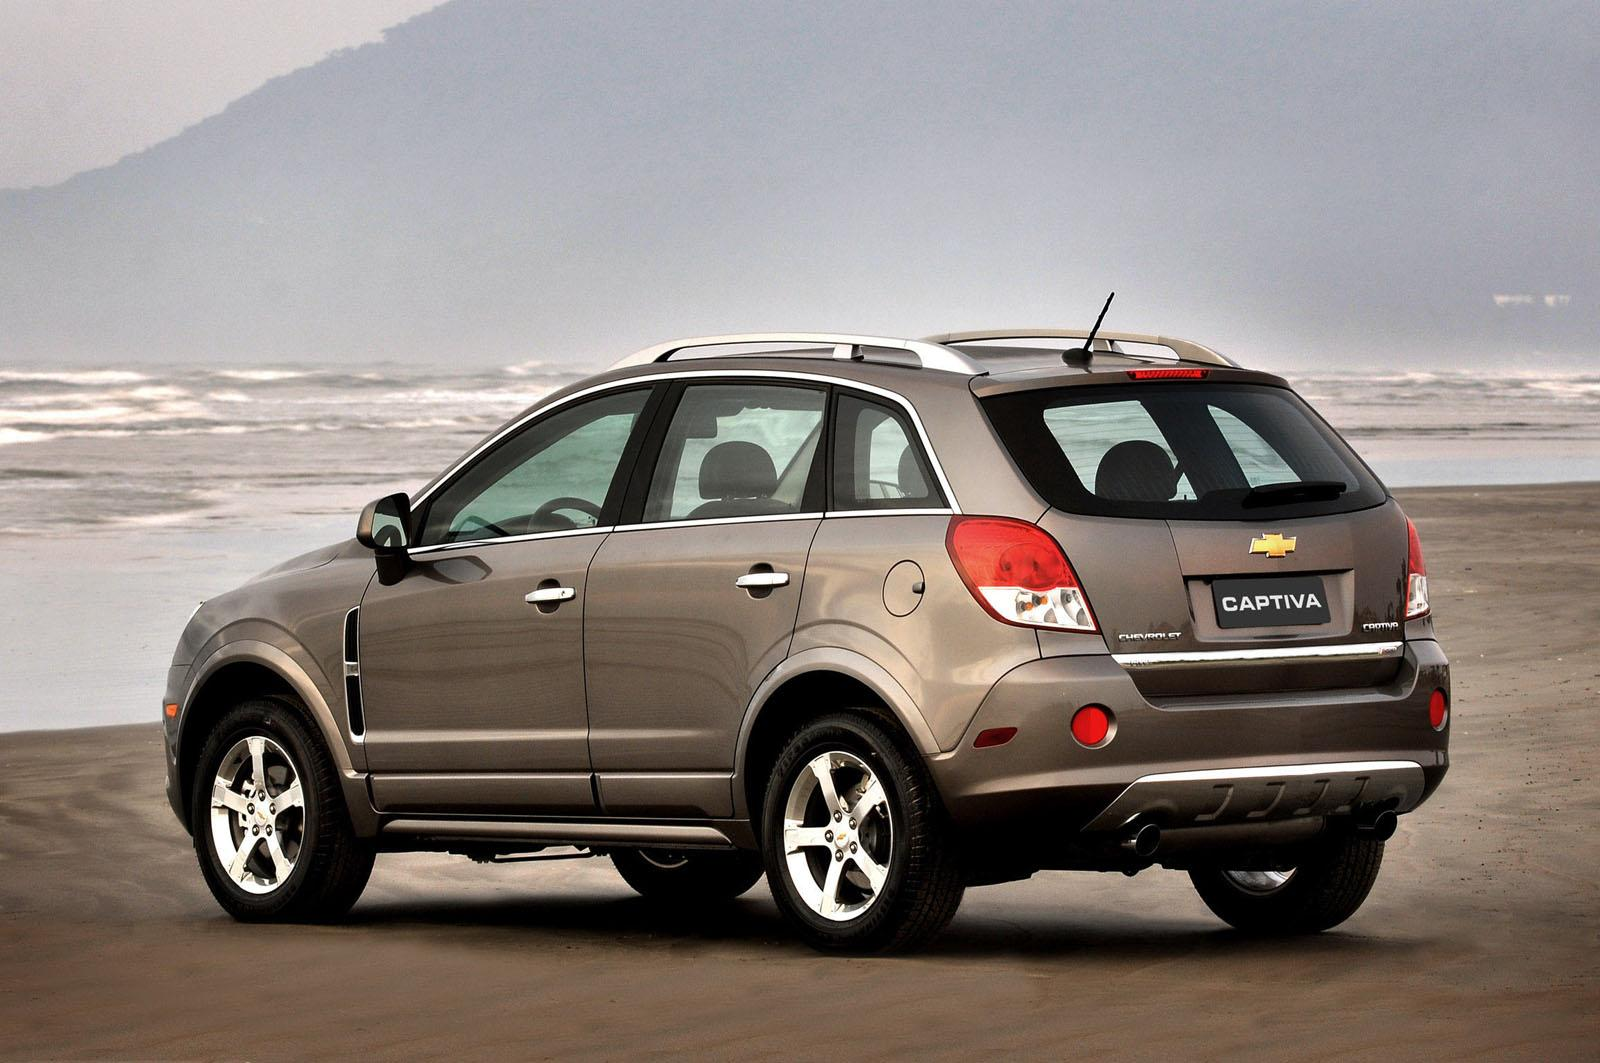 All Chevy chevy captiva awd : Chevrolet Captiva Sport US